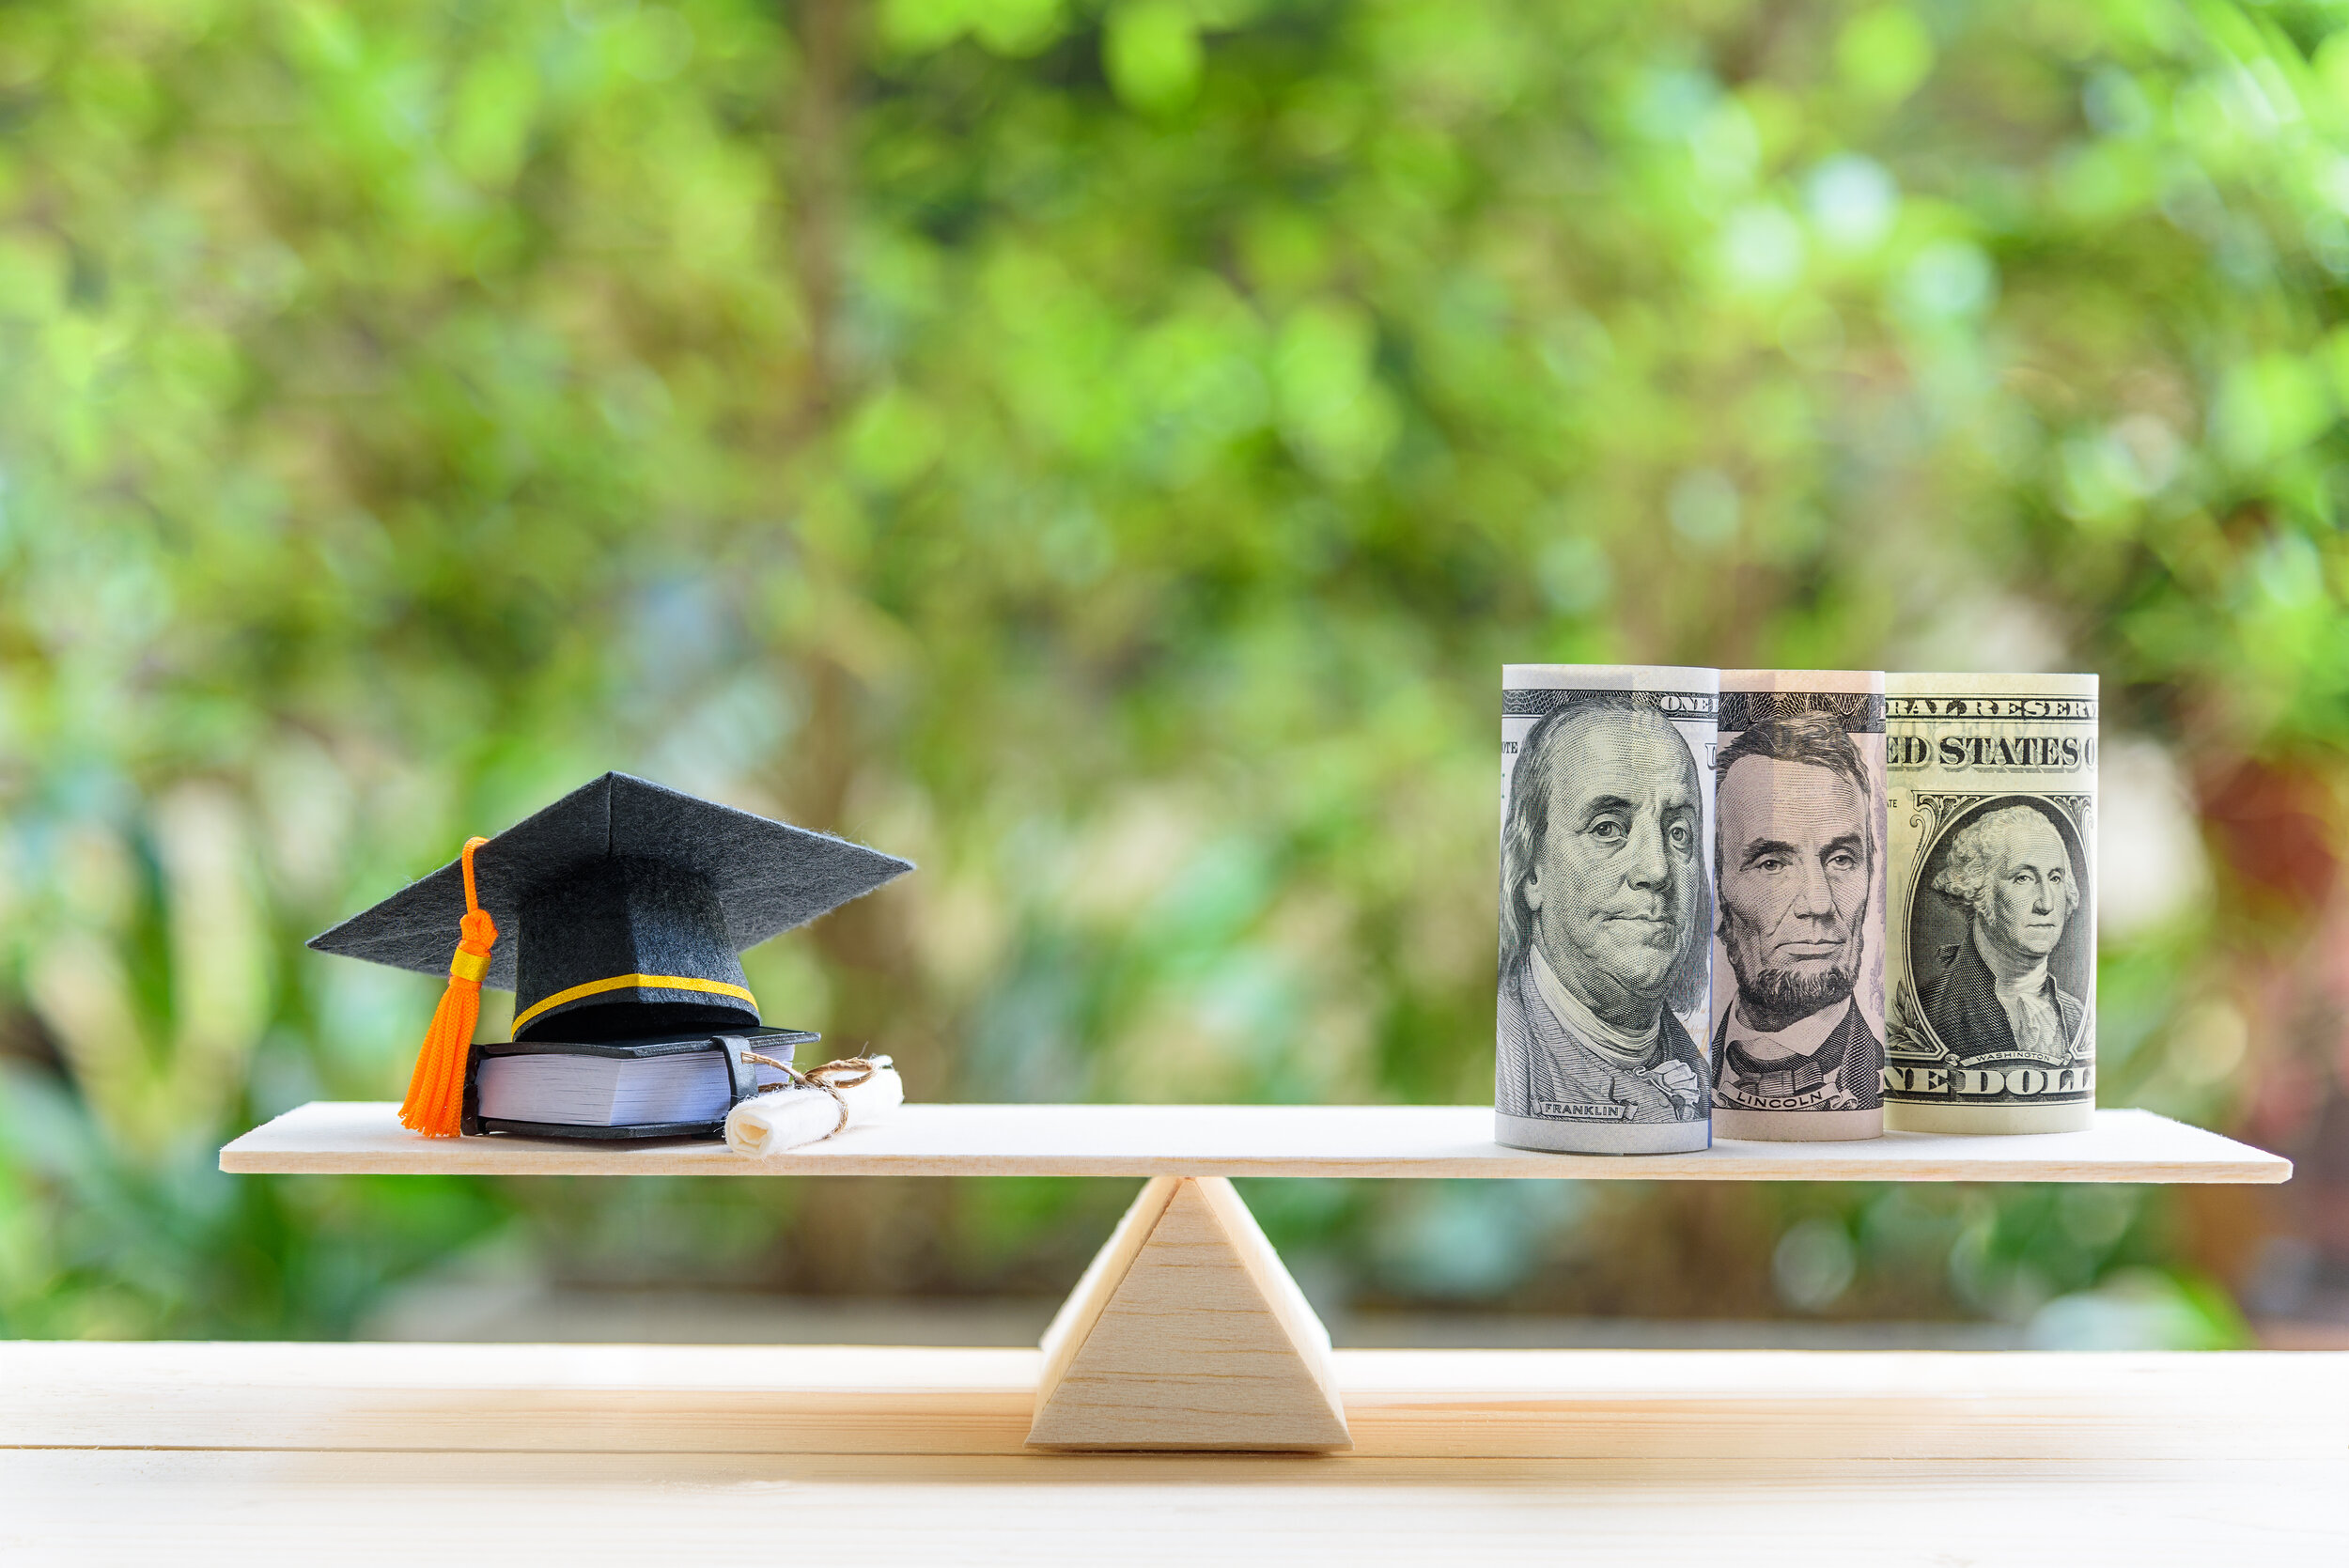 """""""Without proactive regulatory action and strong state laws,"""" said Debbie Goldstein, CRL Executive Vice President, """"students of color will continue to carry larger debt burdens, exacerbating the racial wealth gap."""" (Photo: iStockphoto / NNPA)"""